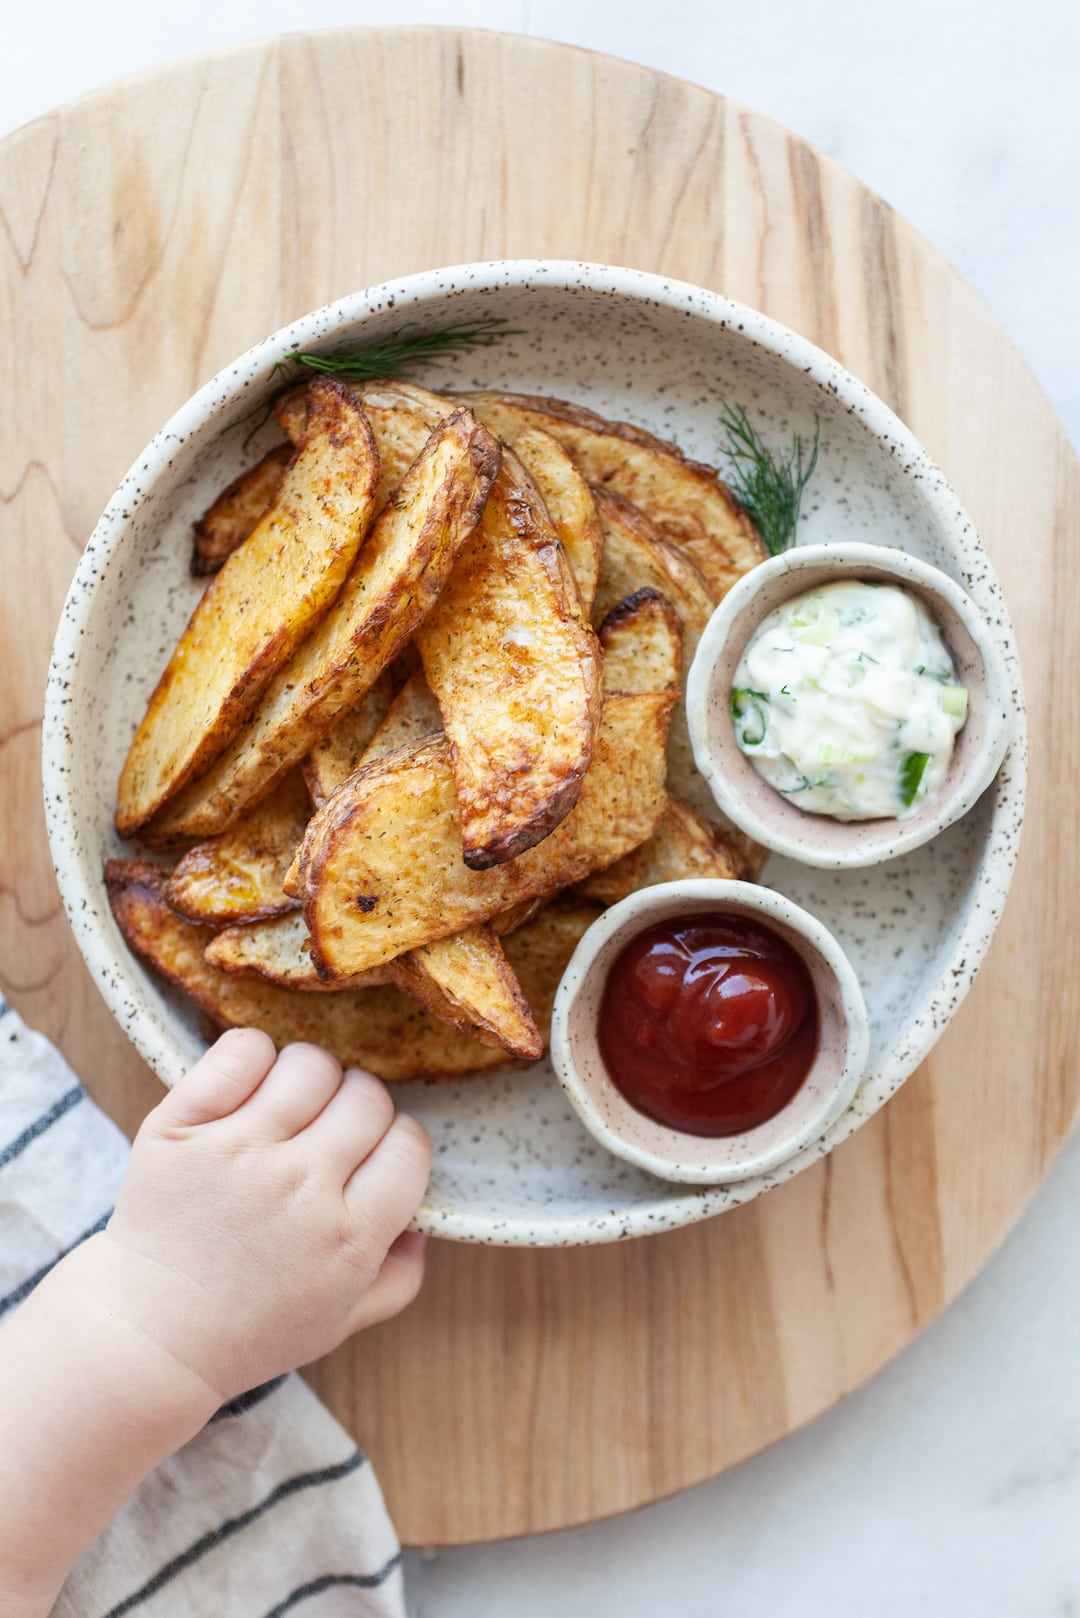 Air Fried Potato Wedges on a plate with a small Childs hand reaching for the plate